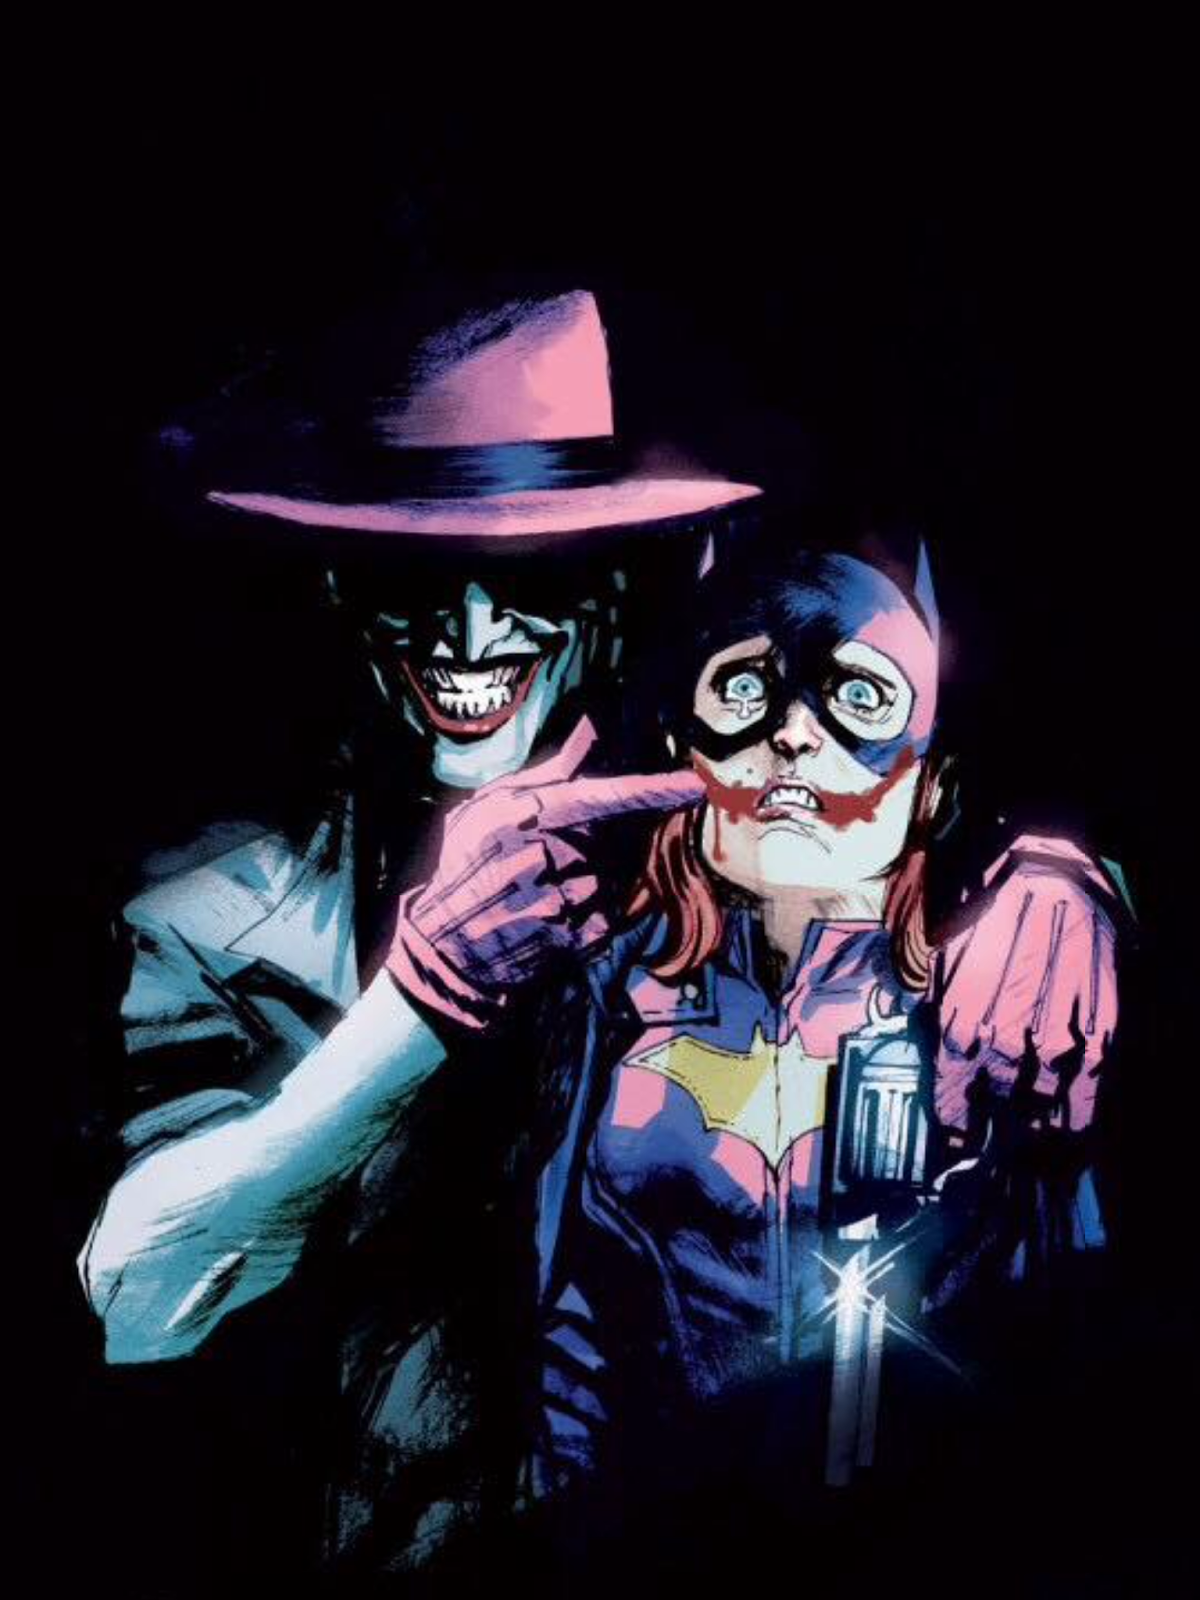 dc-comics-gives-in-to-threats-alan-moore-s-the-killing